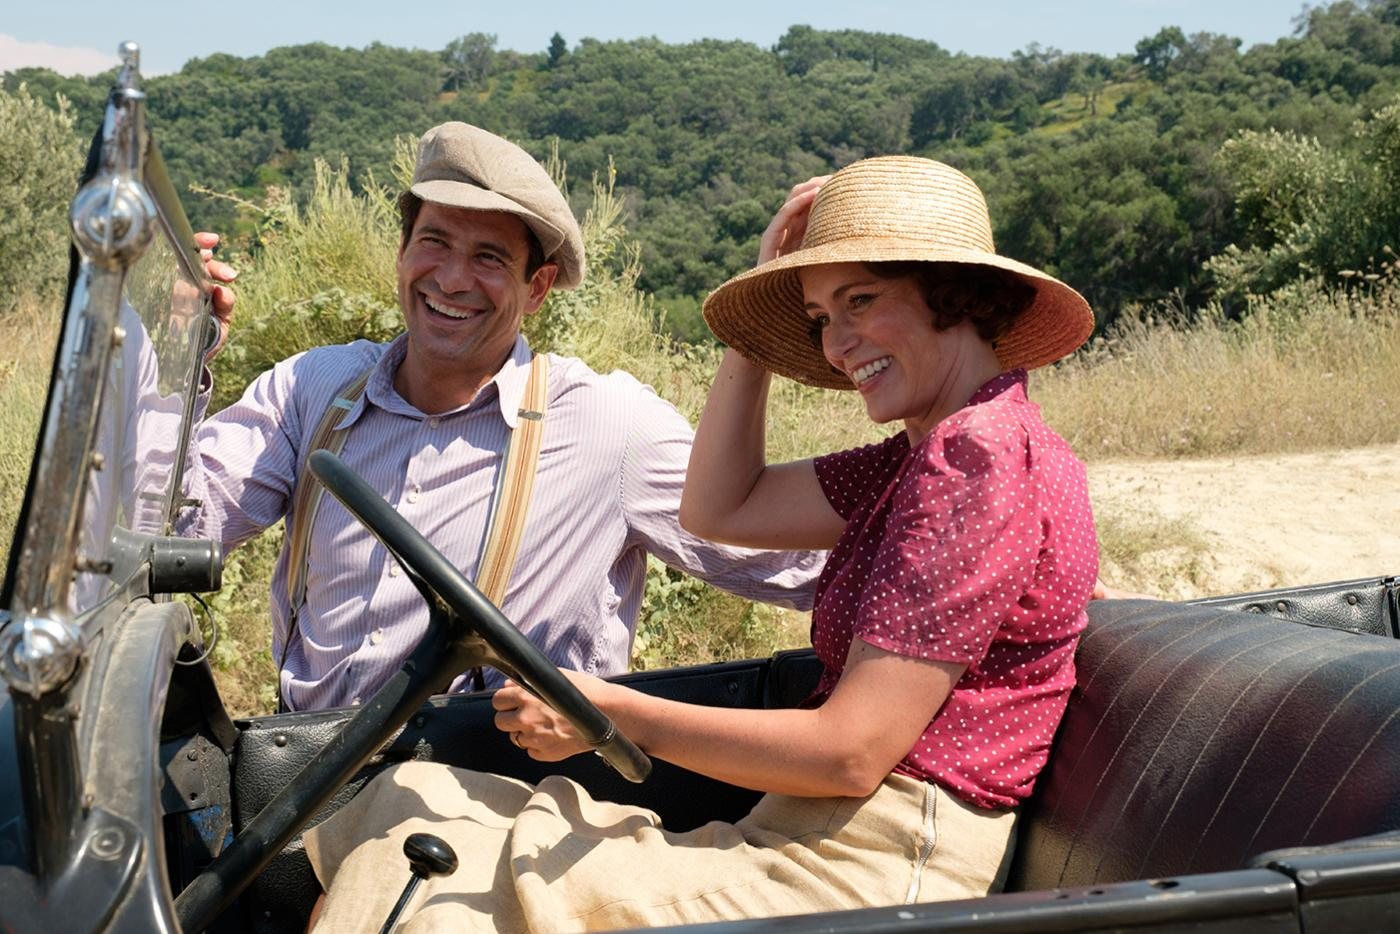 Spyros (ALEXIS GEORGOULIS) & Louisa Durrell (KEELEY HAWES) in The Durrells in Corfu. Photo: Joss Barratt for Sid Gentle Films & MASTERPIECE